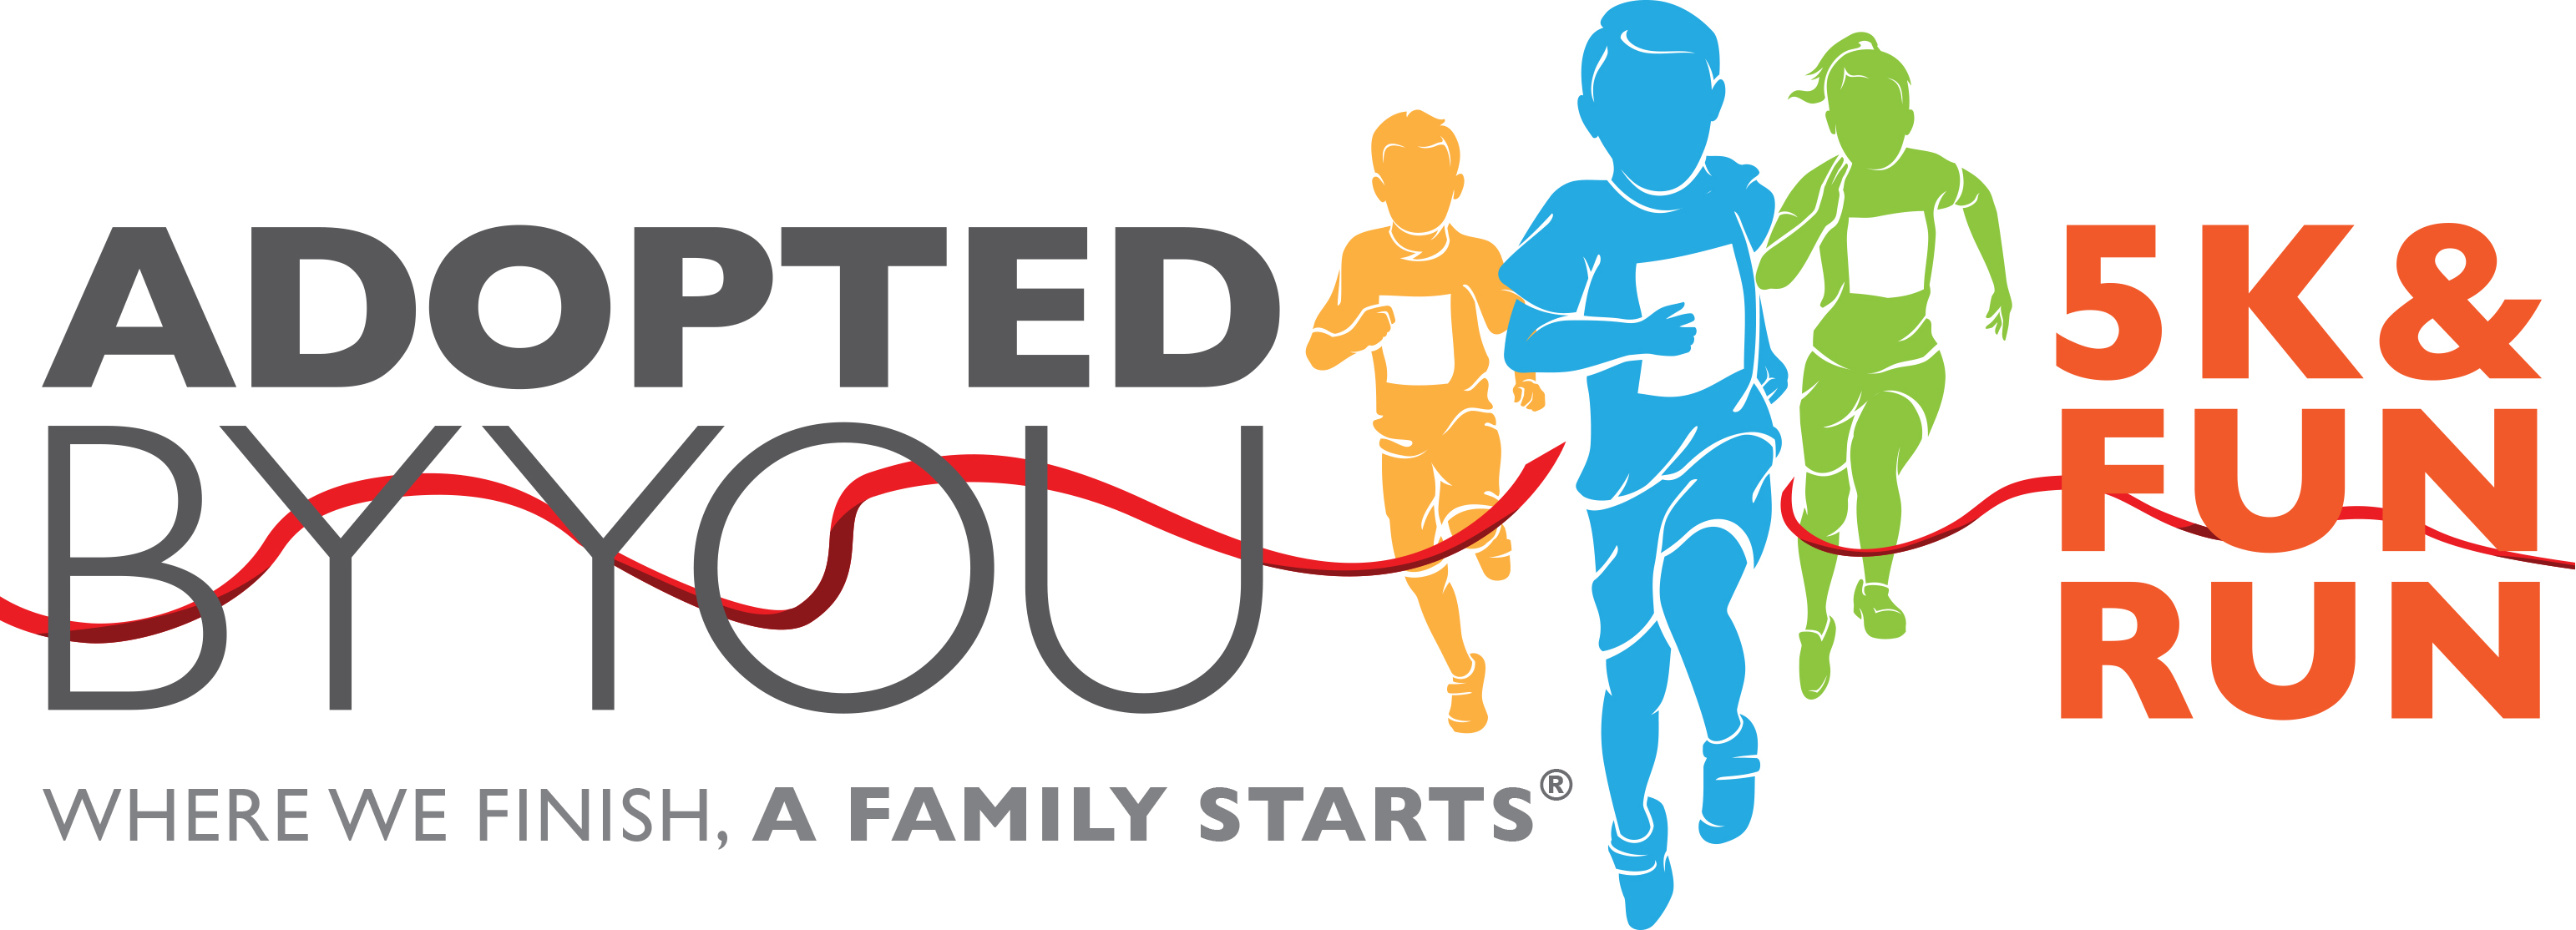 2nd annual adopted by you 5k fun run adoption grants gift of